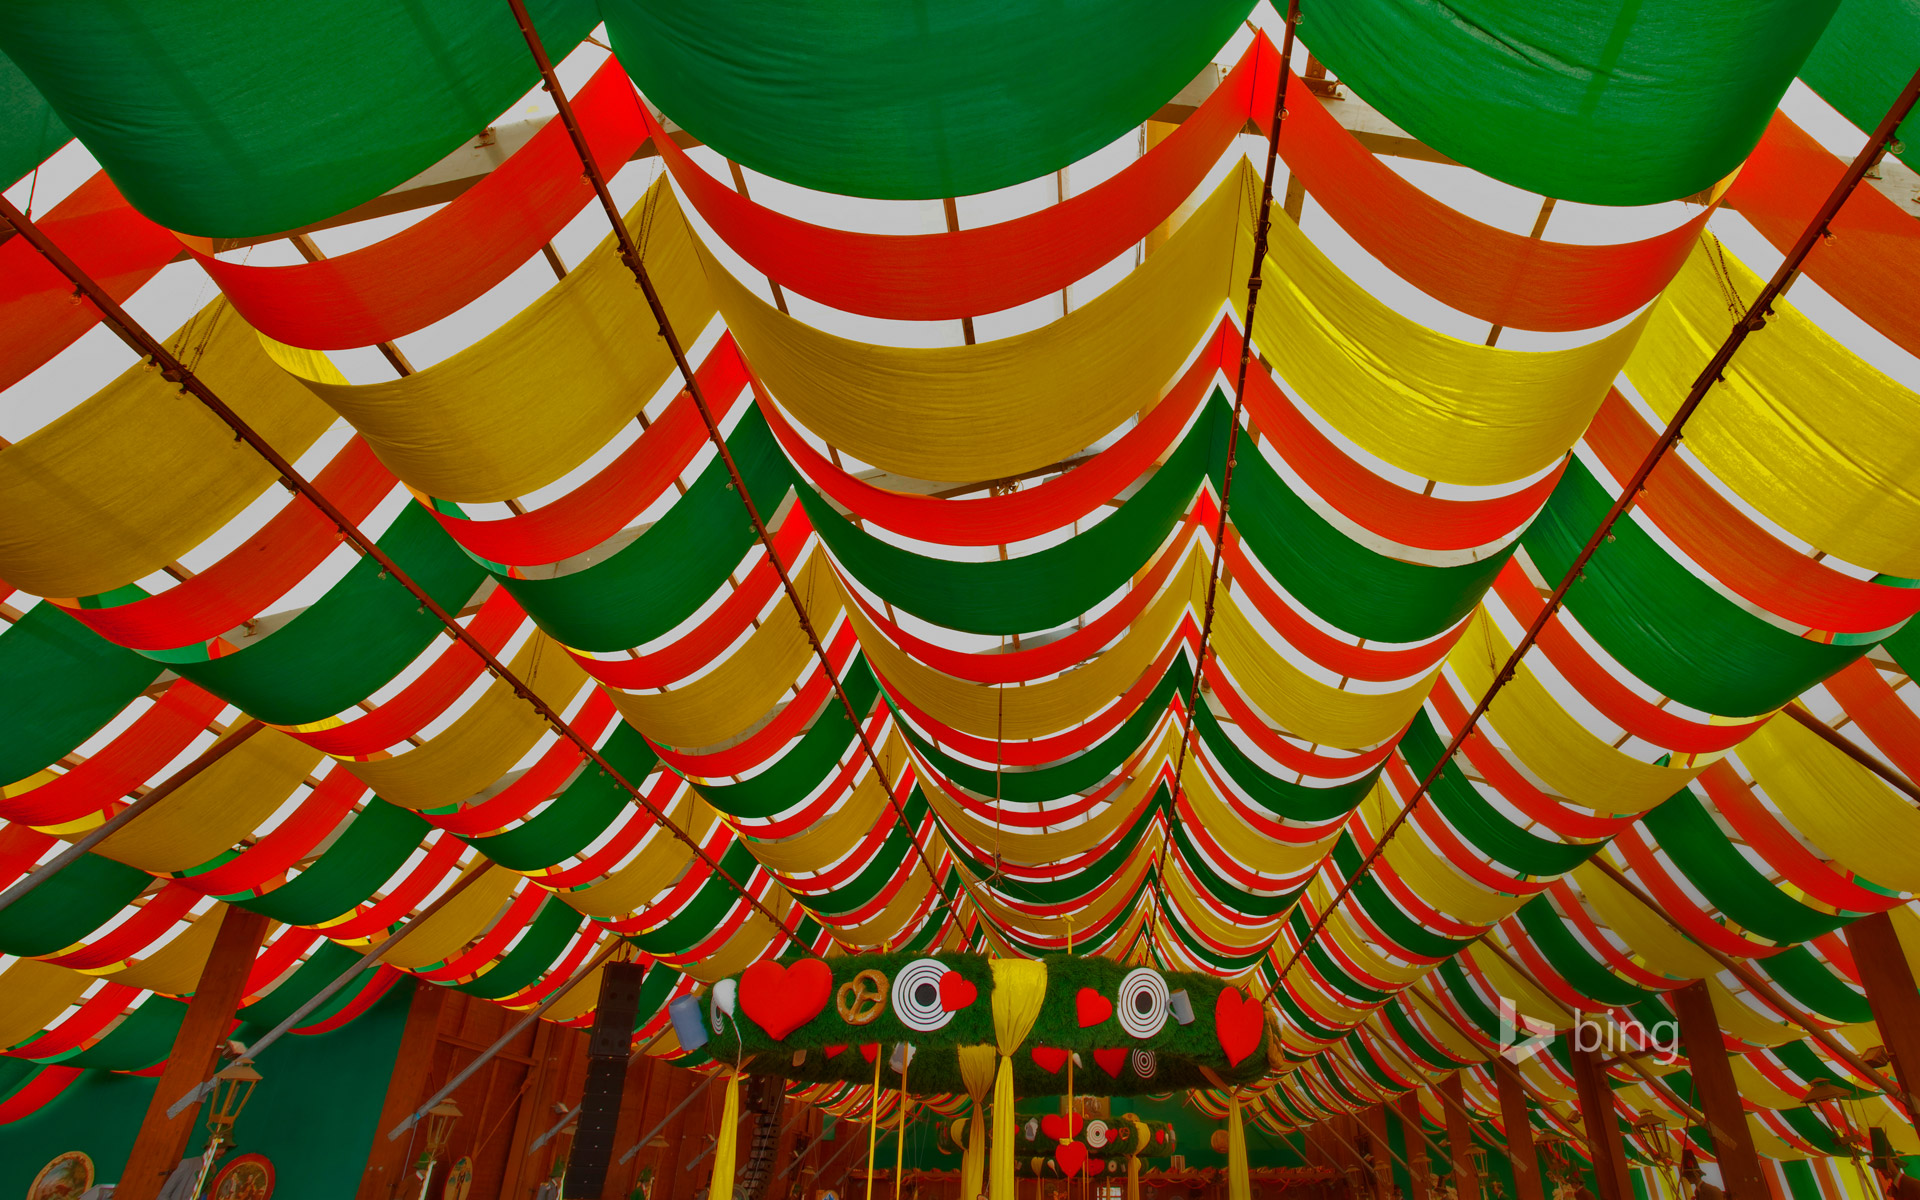 Interior of a beer tent at Oktoberfest in Munich, Germany